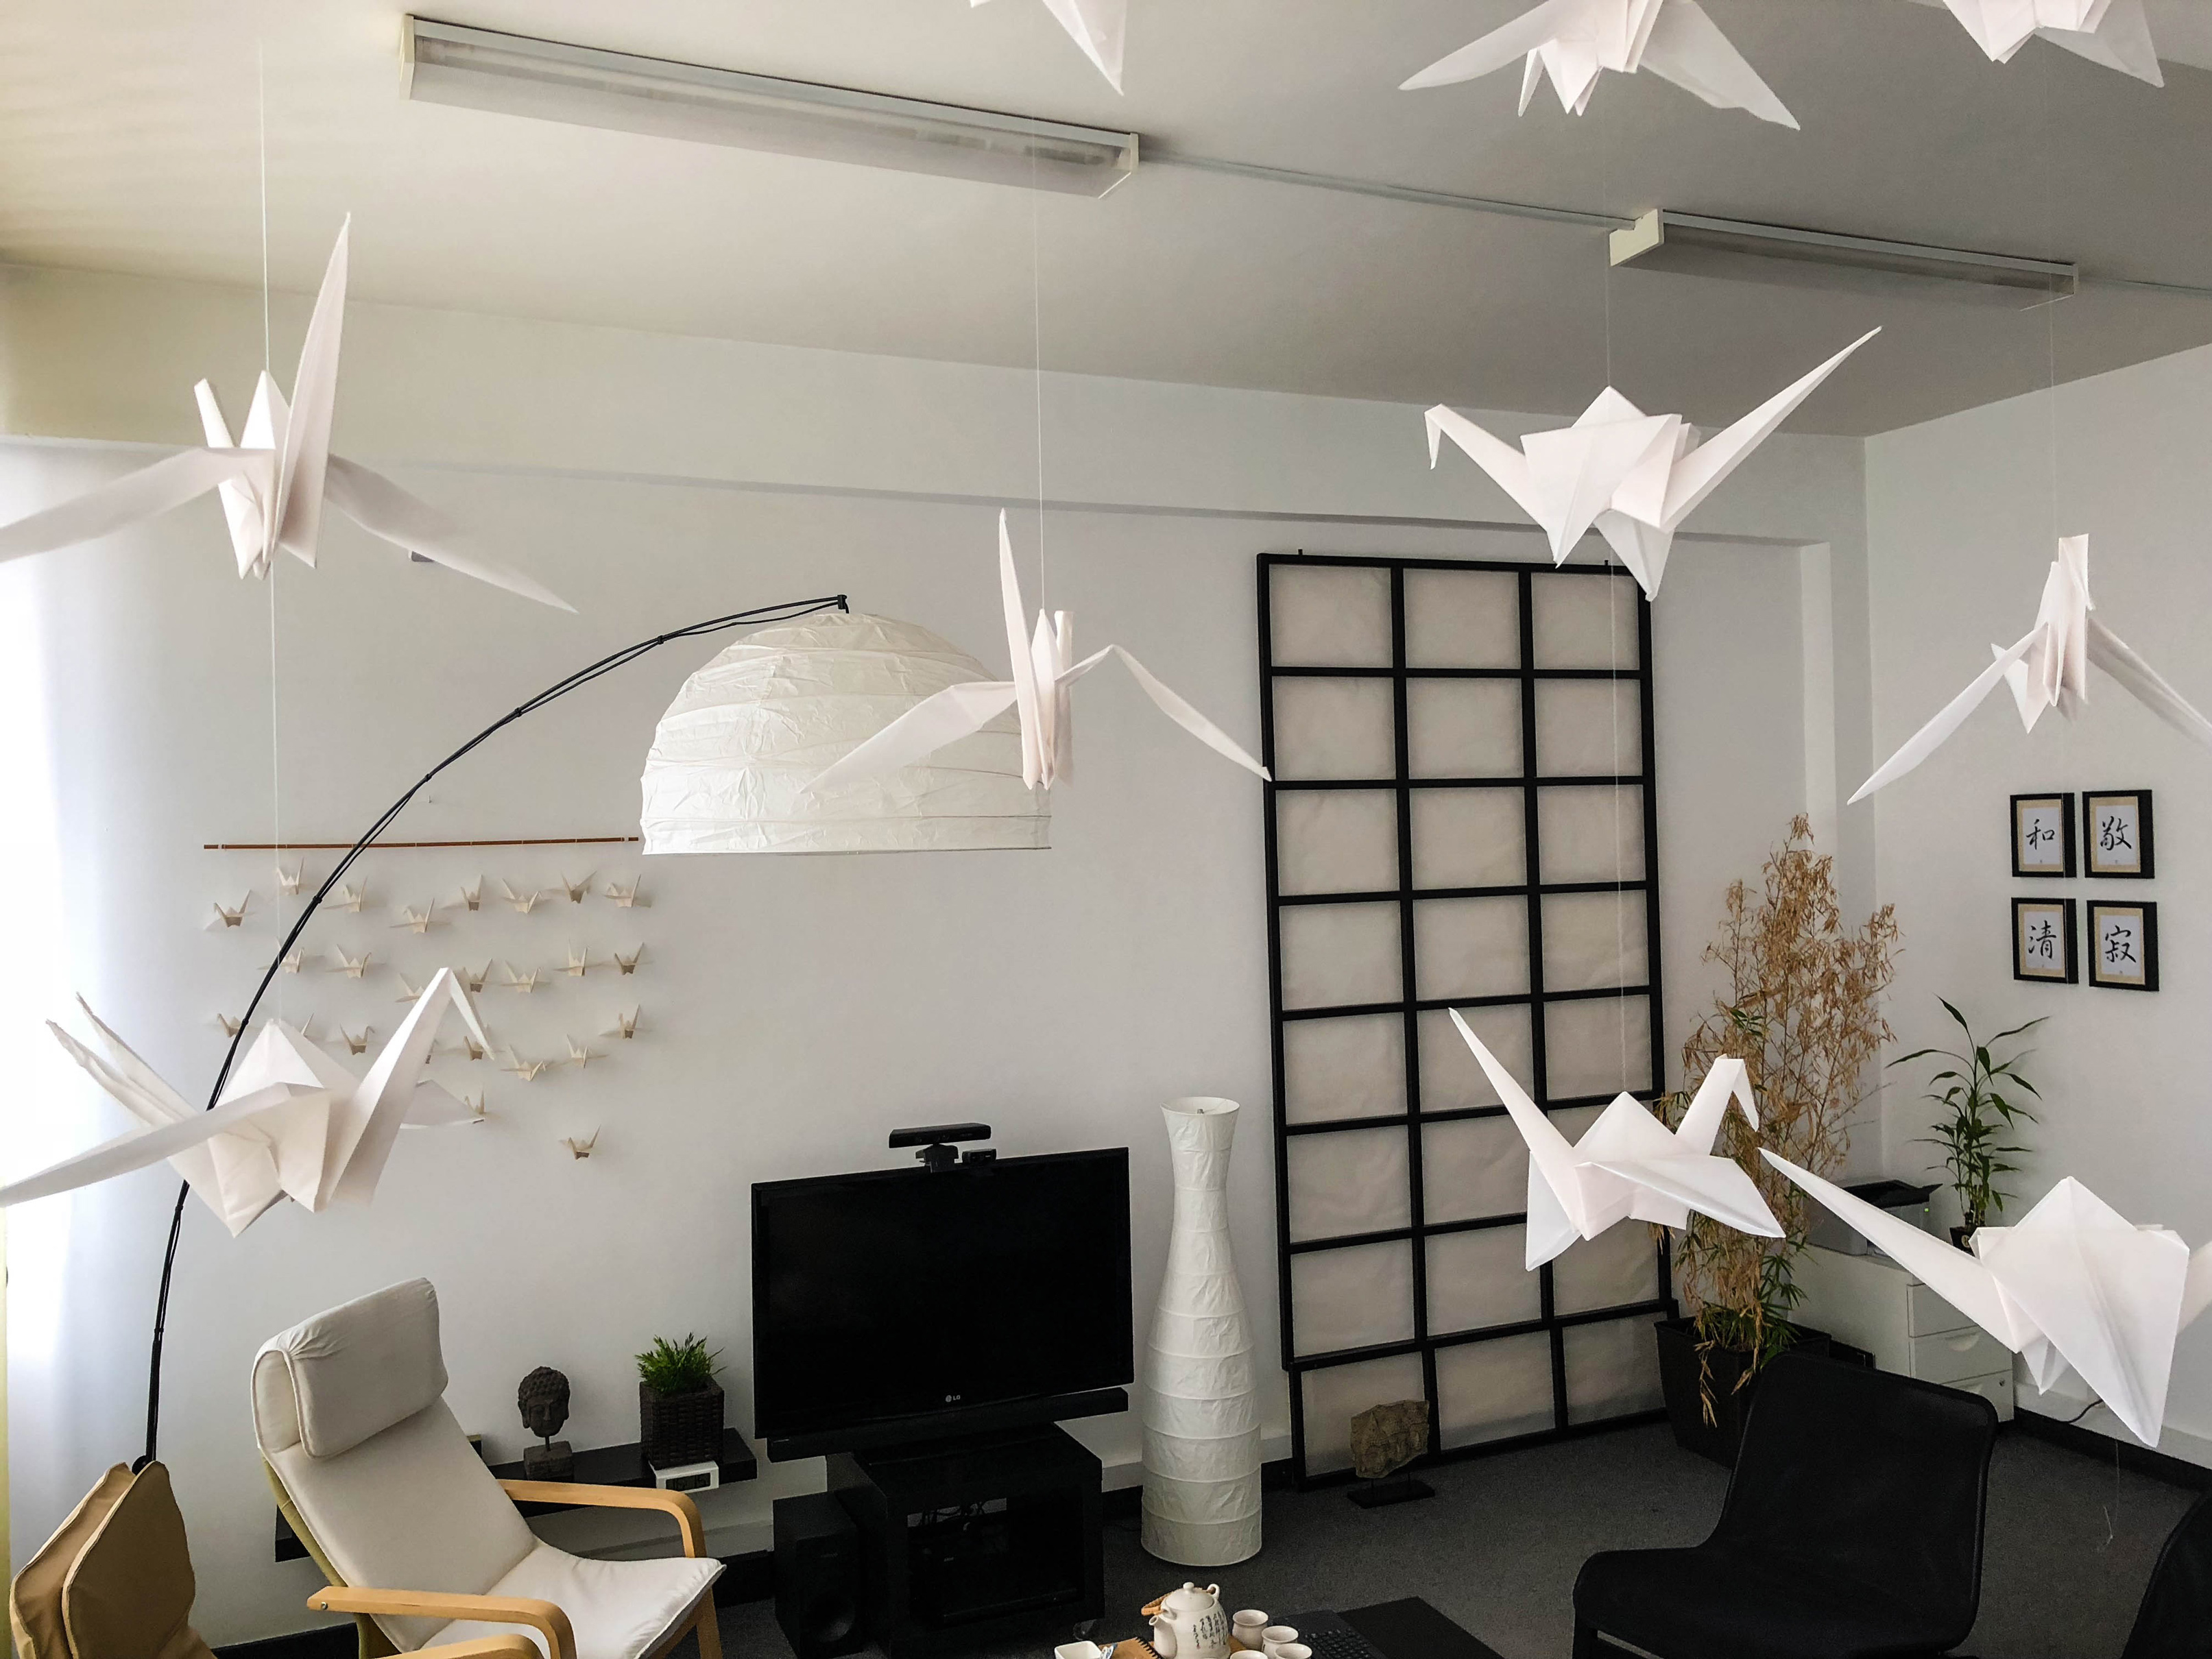 The History of the Origami Cranes Hanging in Our Office